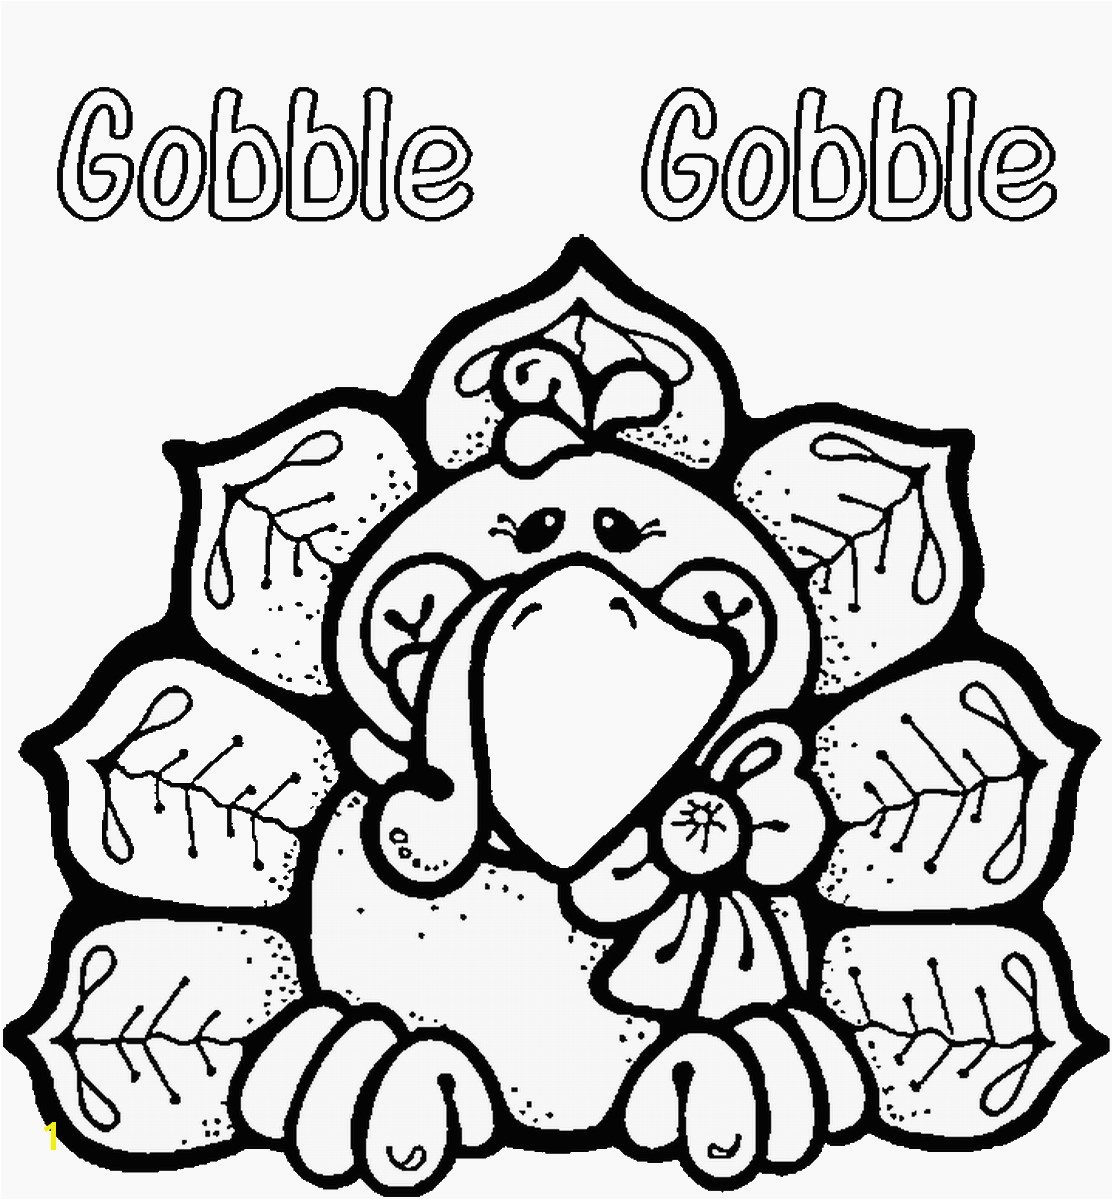 Thanksgiving Coloring Pages that You Can Print 12 Lovely A Turkey for Thanksgiving Coloring Pages